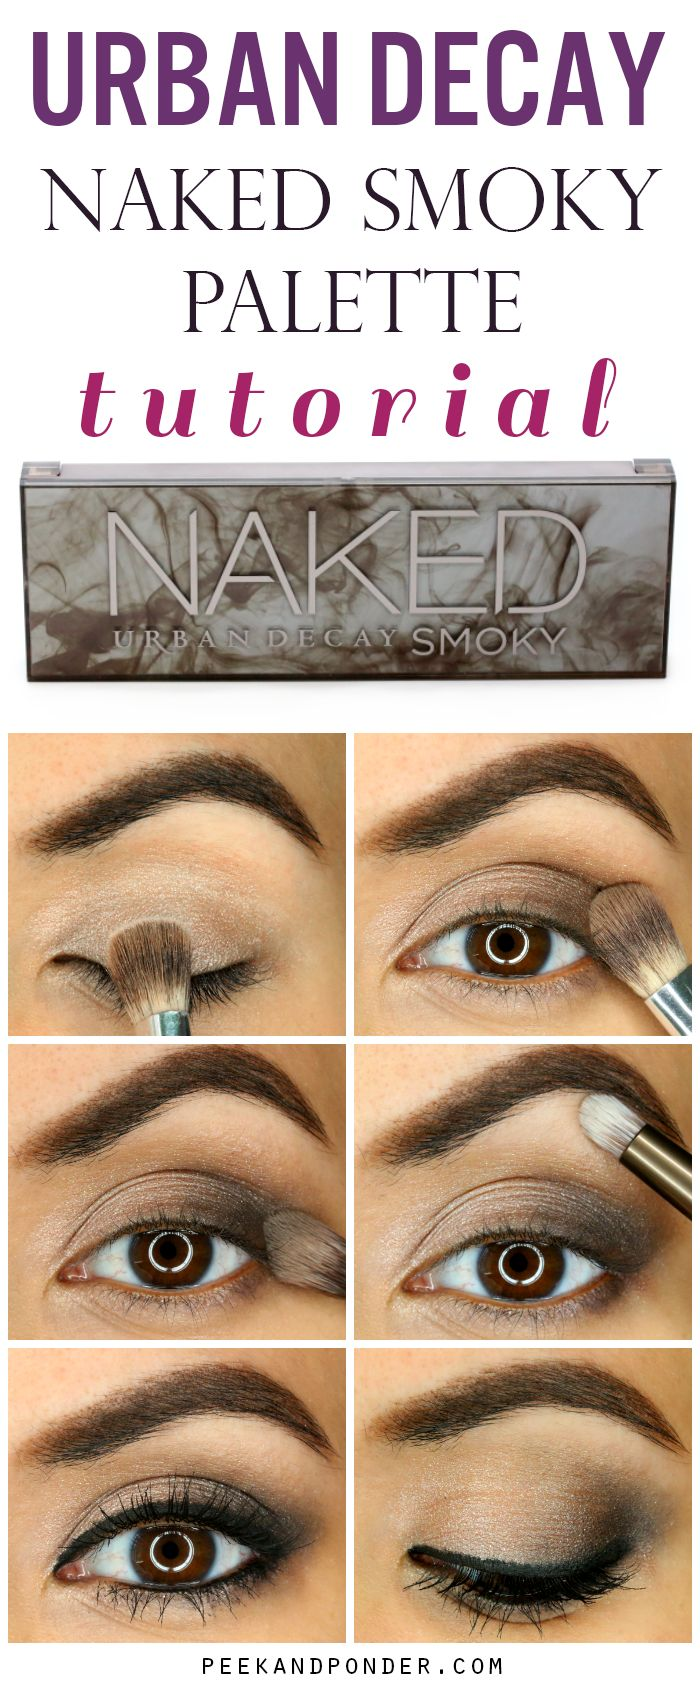 25+ best ideas about Urban decay smoky palette on Pinterest ...